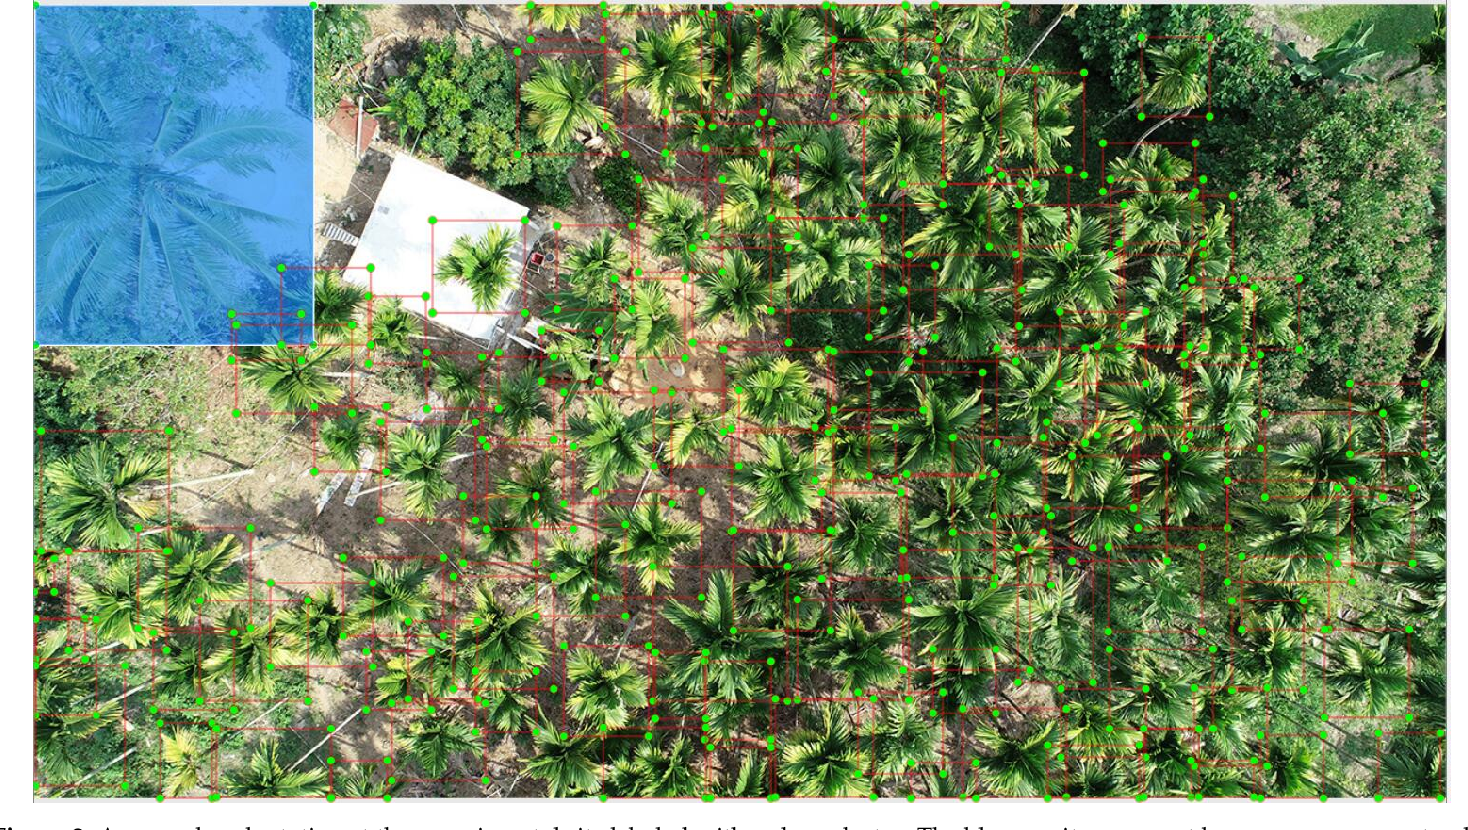 Figure 3 for A Real-time Low-cost Artificial Intelligence System for Autonomous Spraying in Palm Plantations